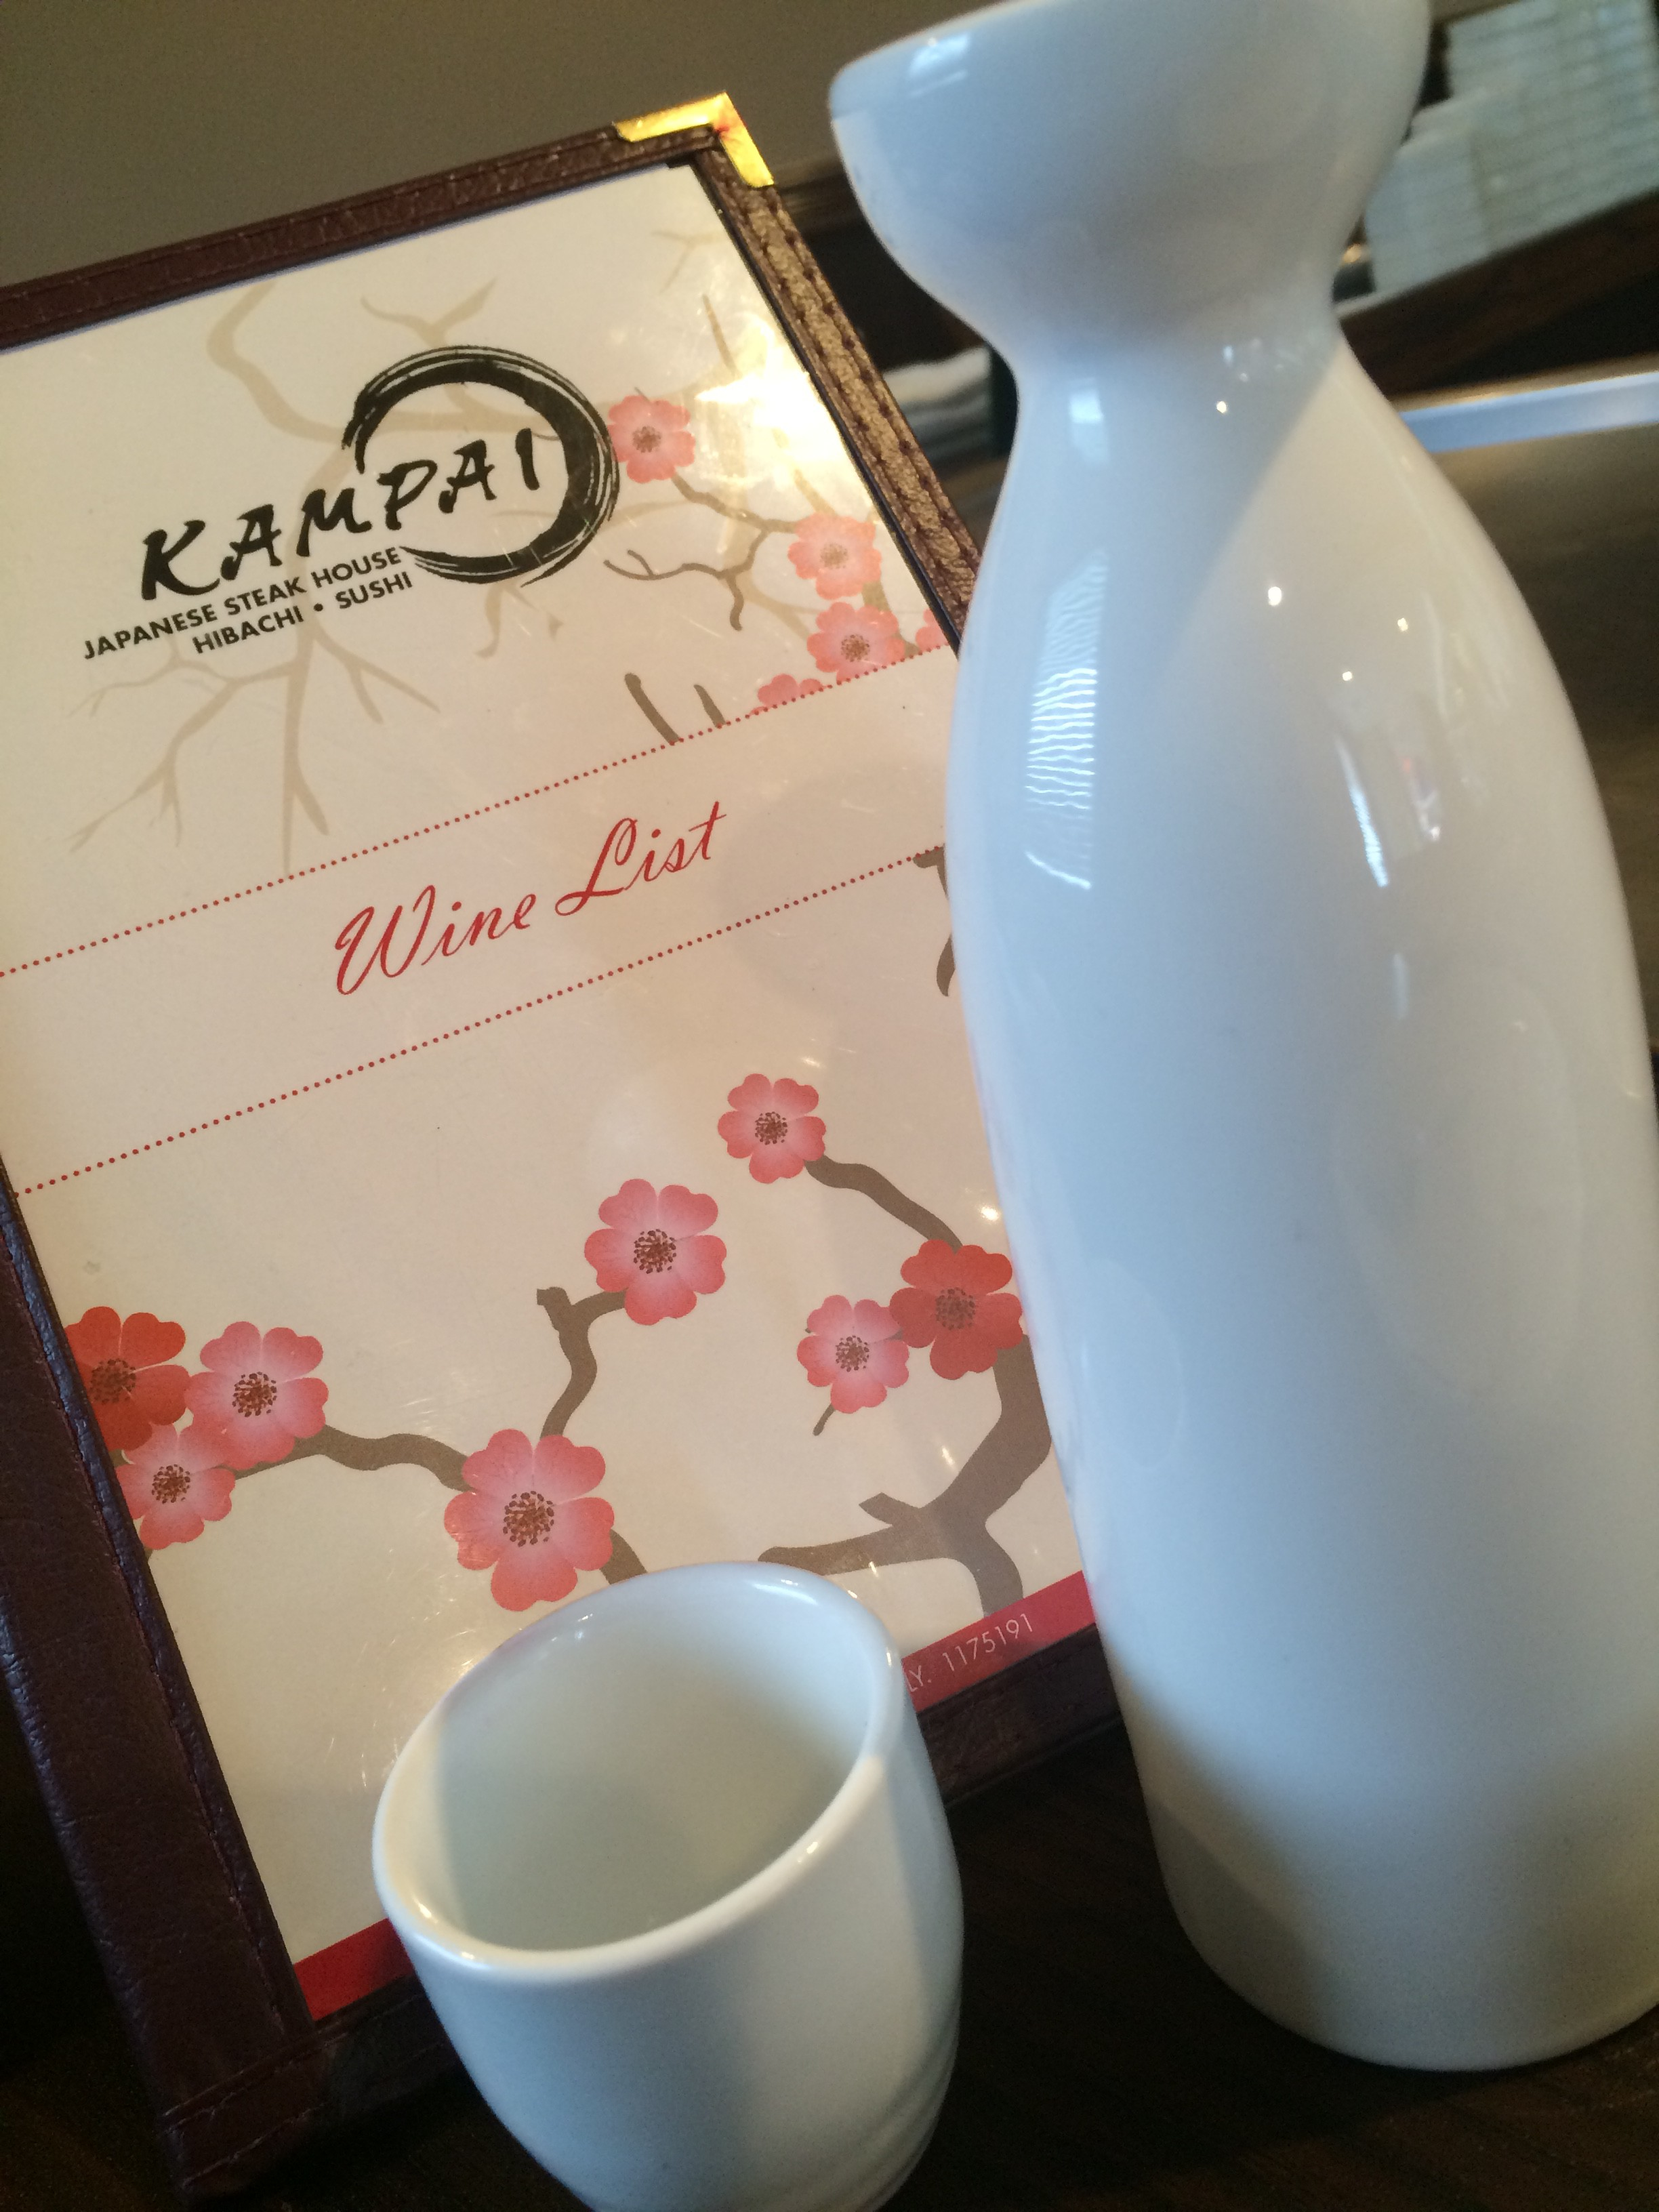 Kampai's wine list and sake dishes. (Photo provided by Christina Madera)